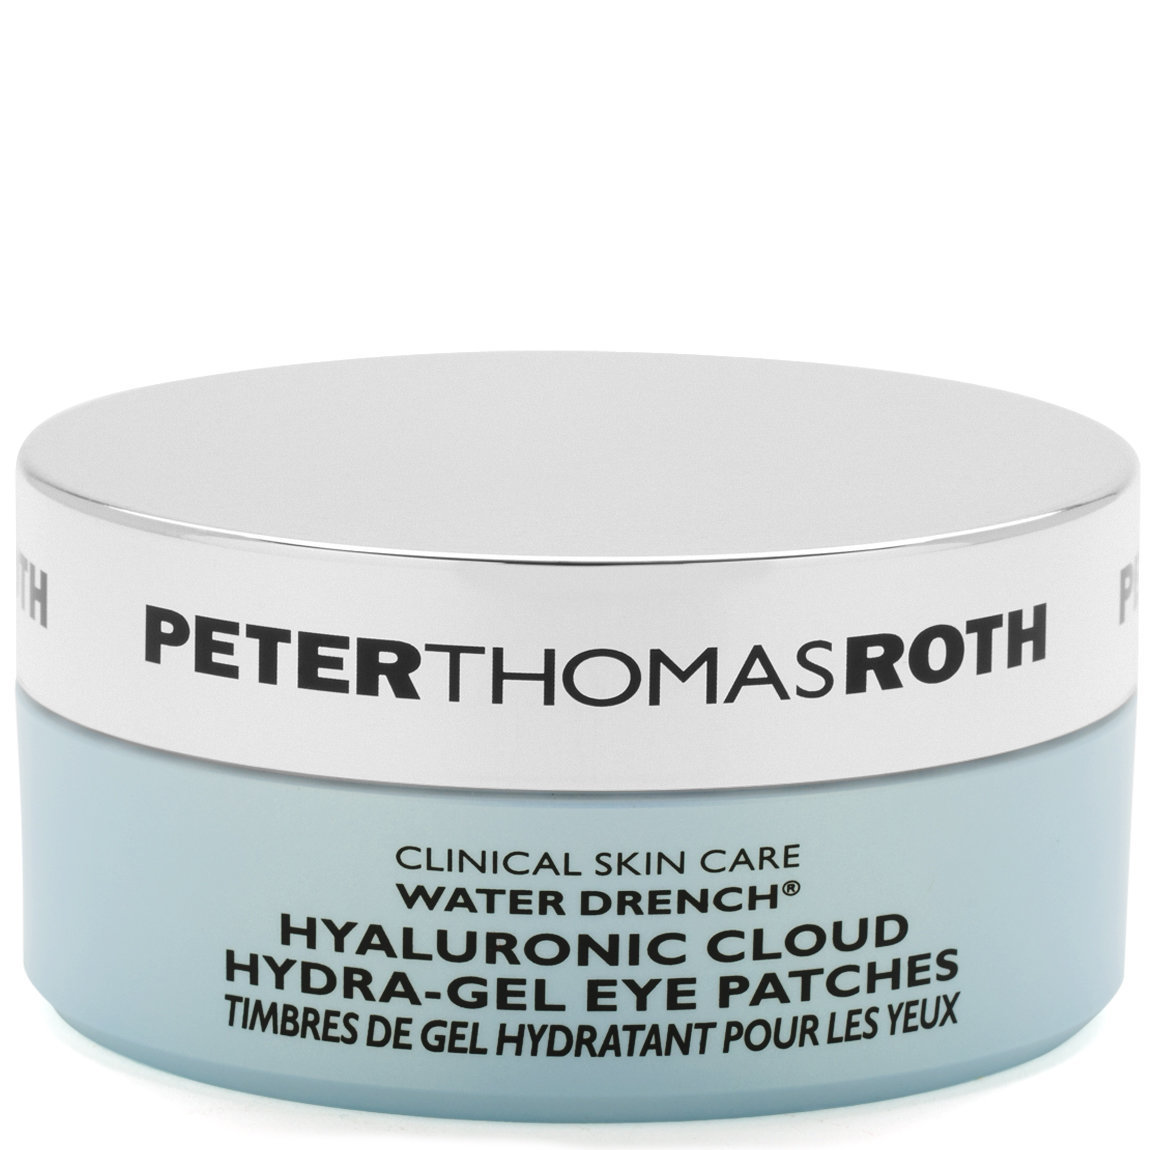 Peter Thomas Roth Water Drench Hyaluronic Cloud Hydra-Gel Eye Patches alternative view 1 - product swatch.